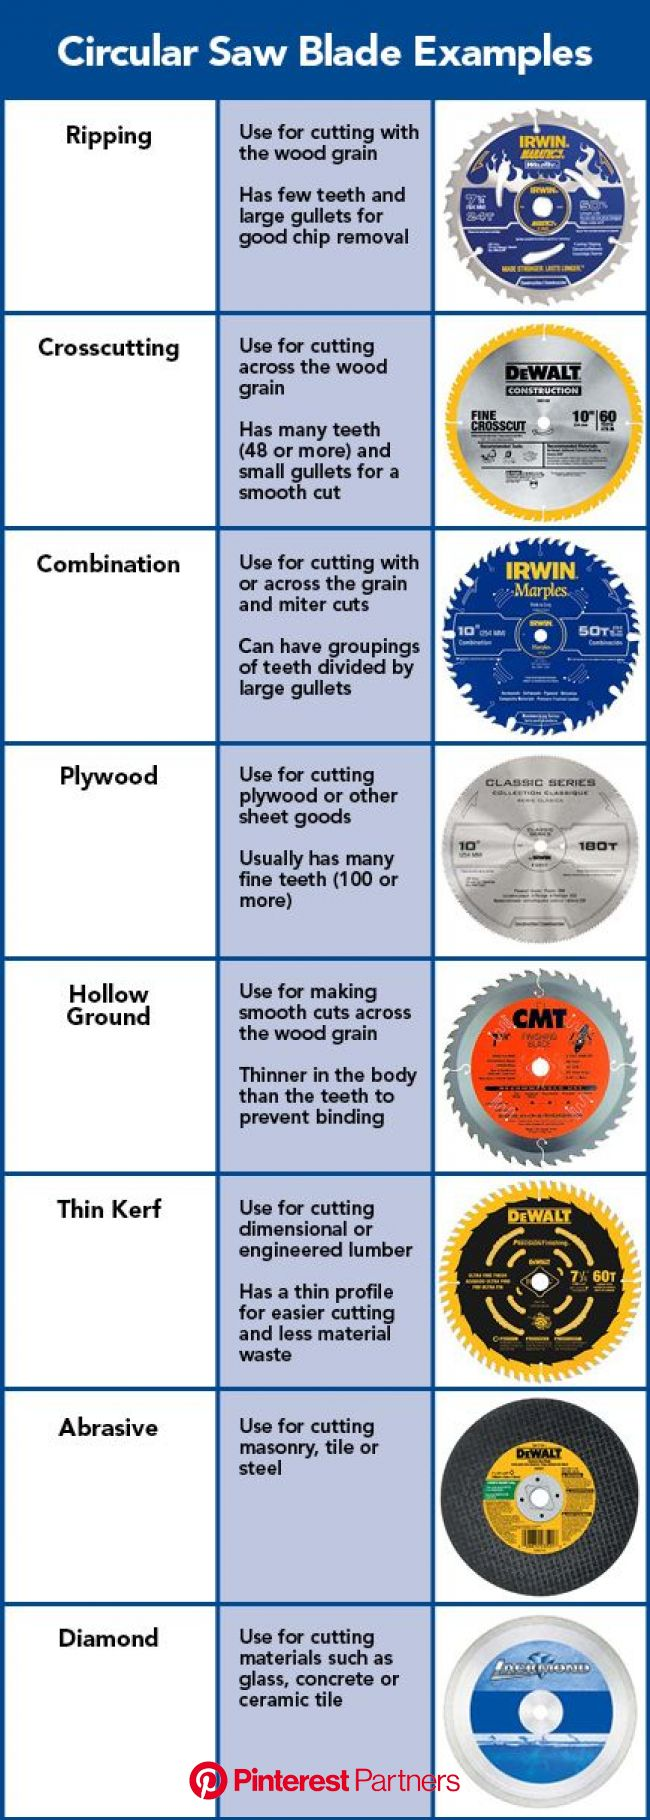 Circular Saw Blade Examples from Lowe's | Wood crafting tools, Woodworking techniques, Circular saw blades